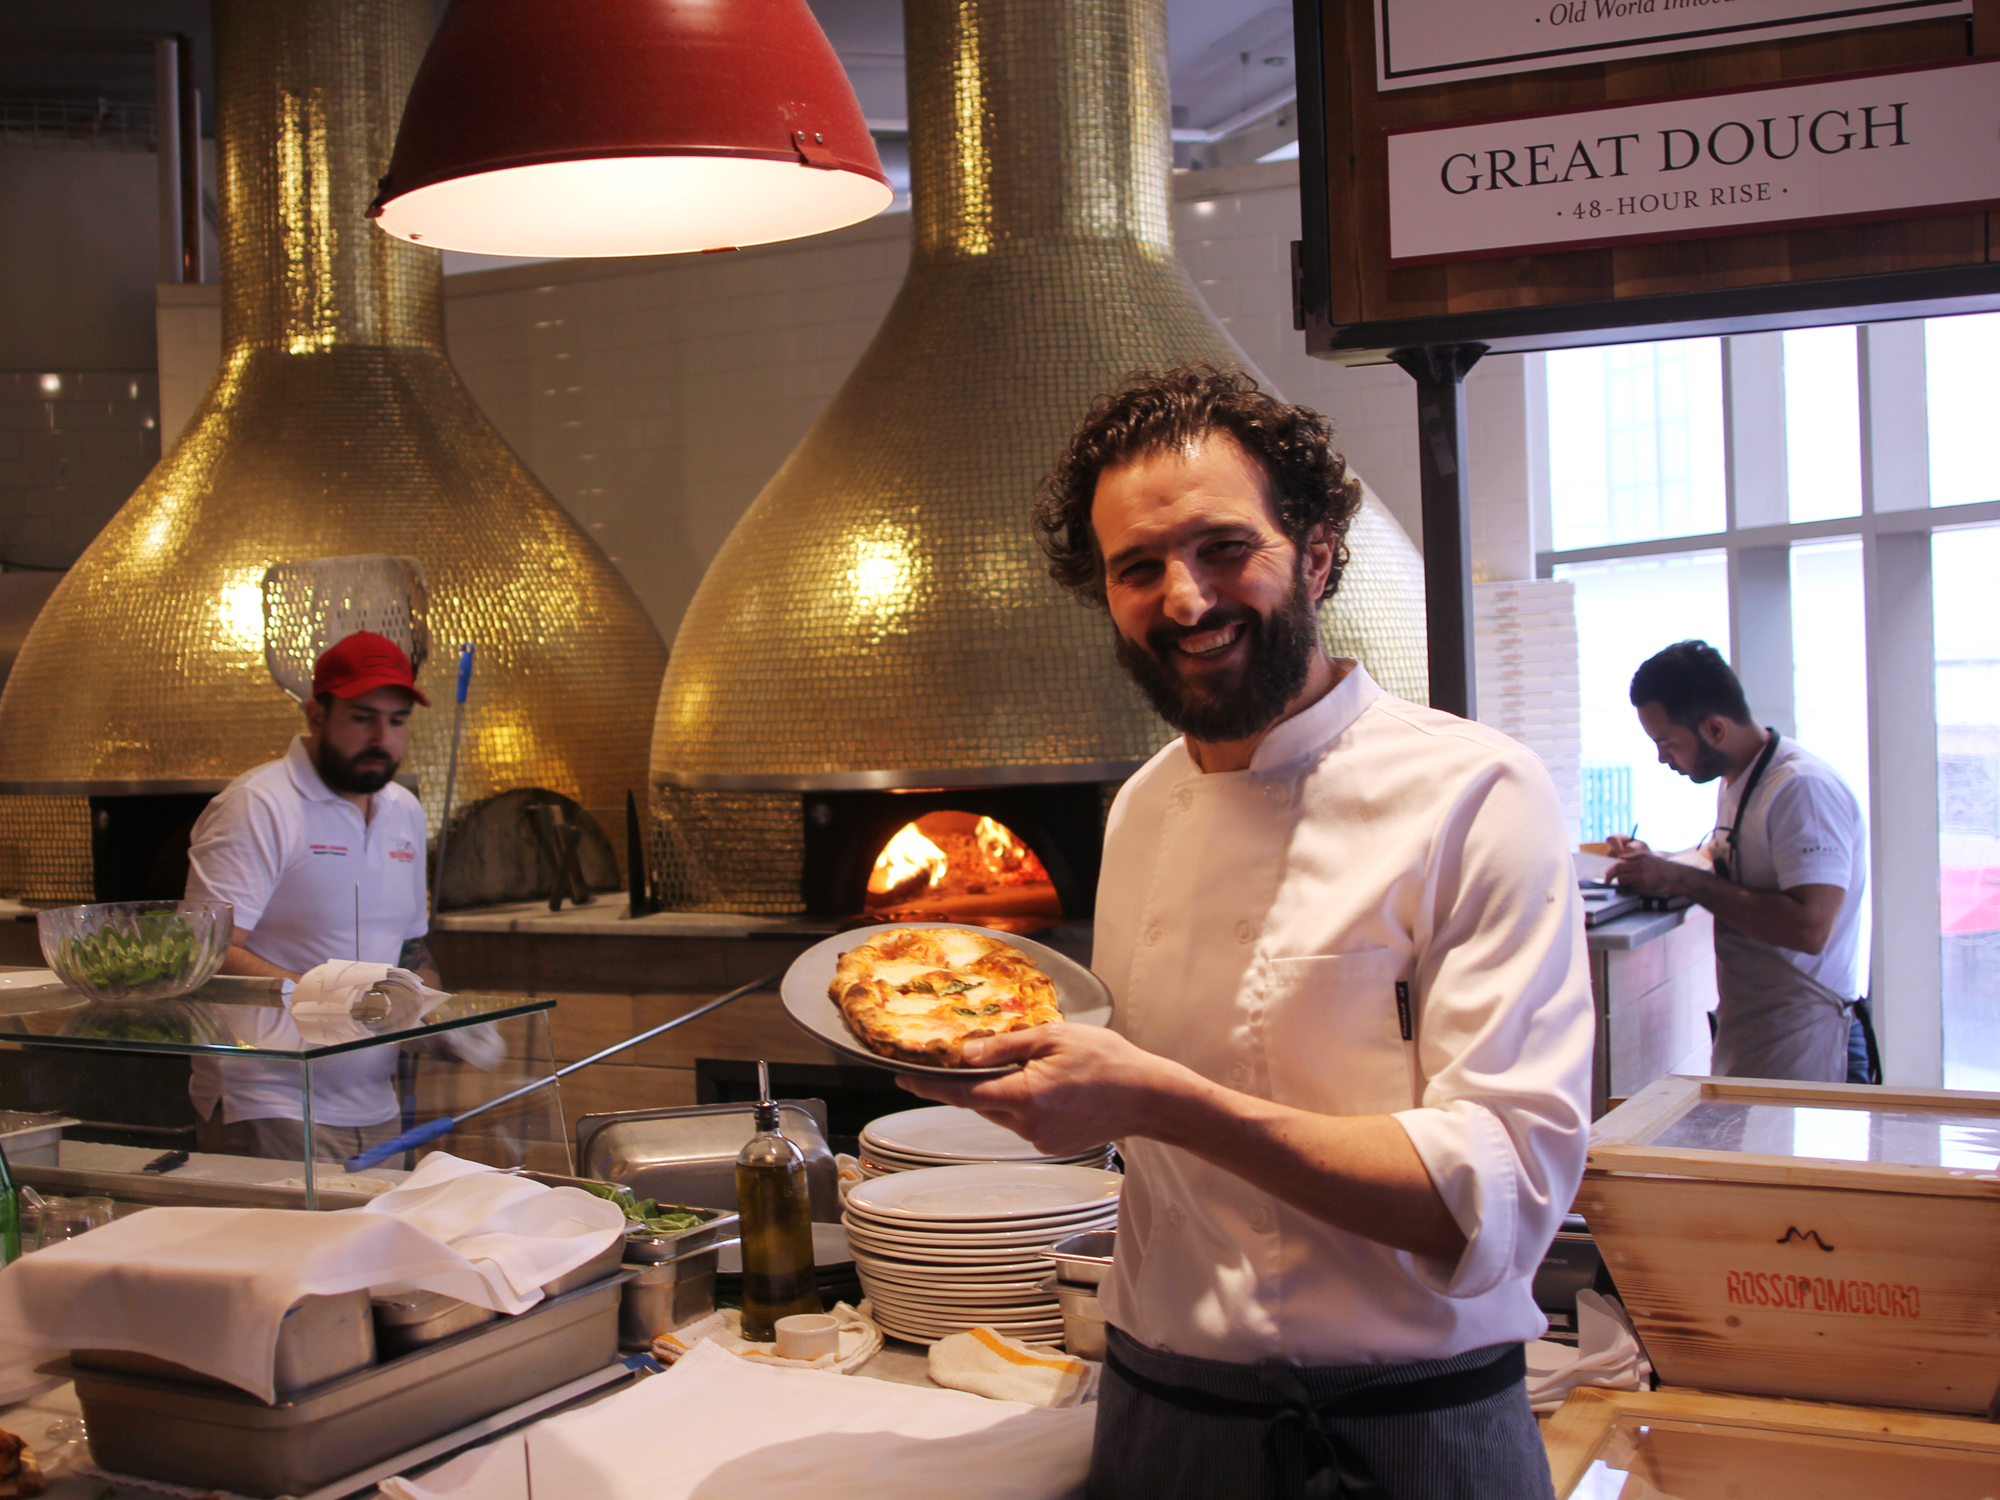 EATALY IS CHANGING NEAPOLITAN PIZZA JUST FOR YOU, CHICAGO